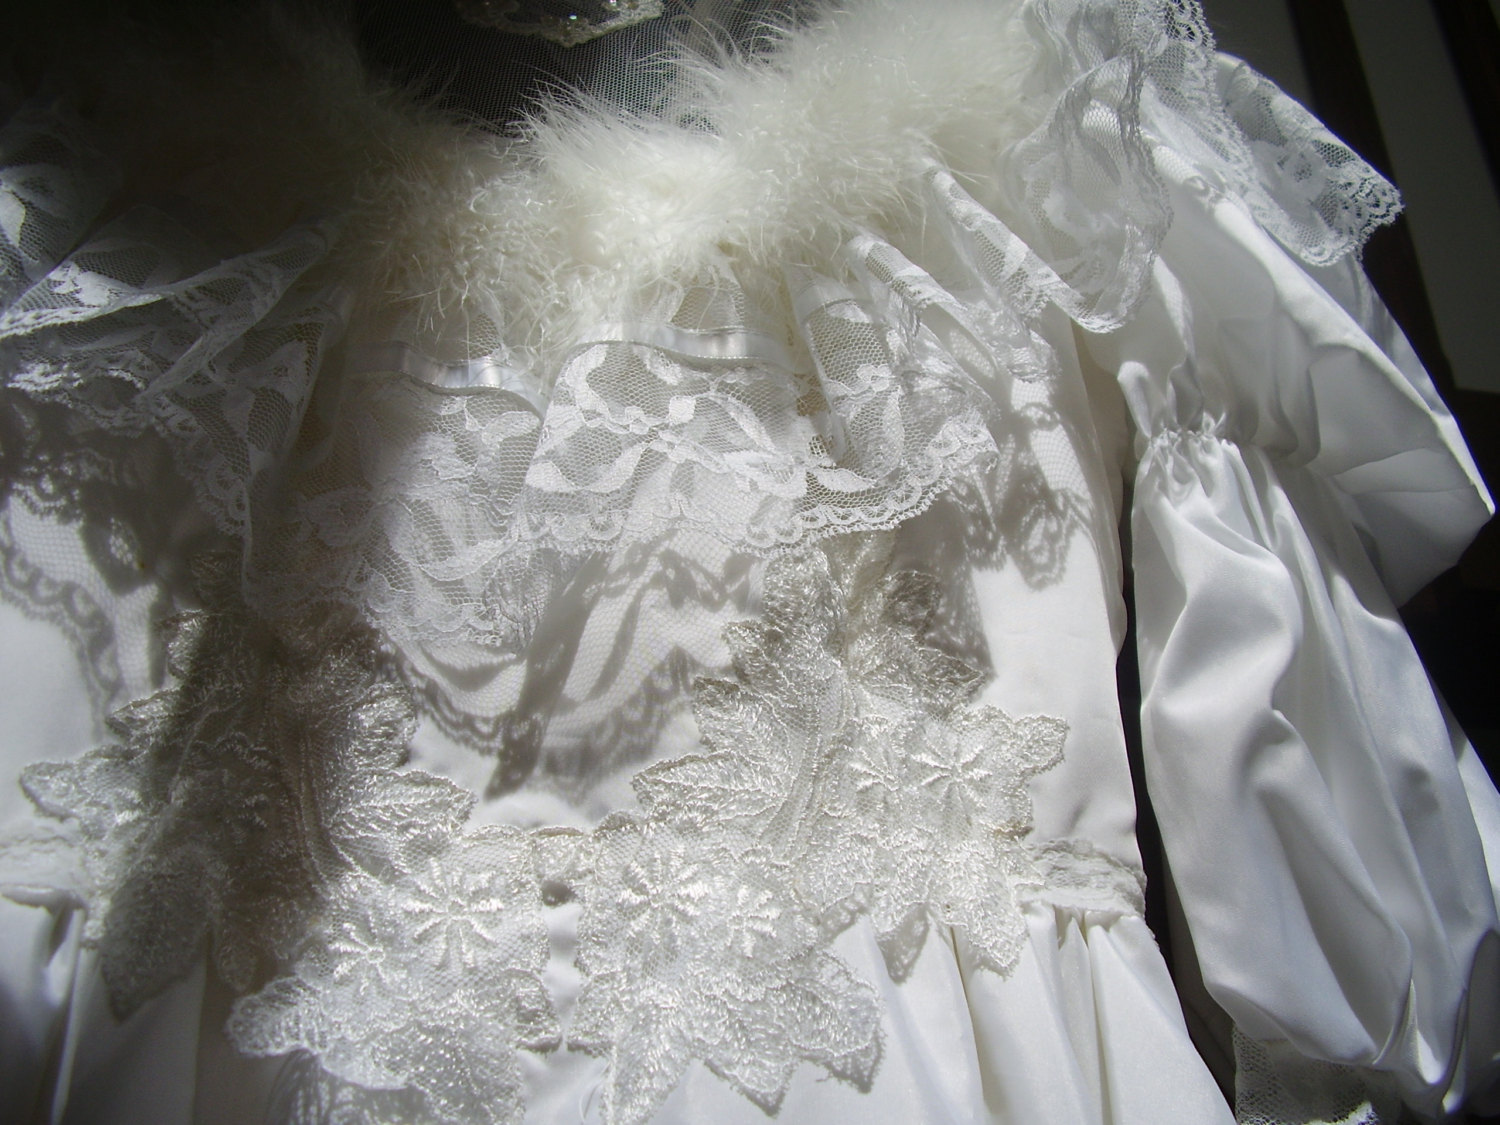 Stunning Vintage 1980`s wedding dress  Gown Feathers, Pearls, Lace, Bows Beautif